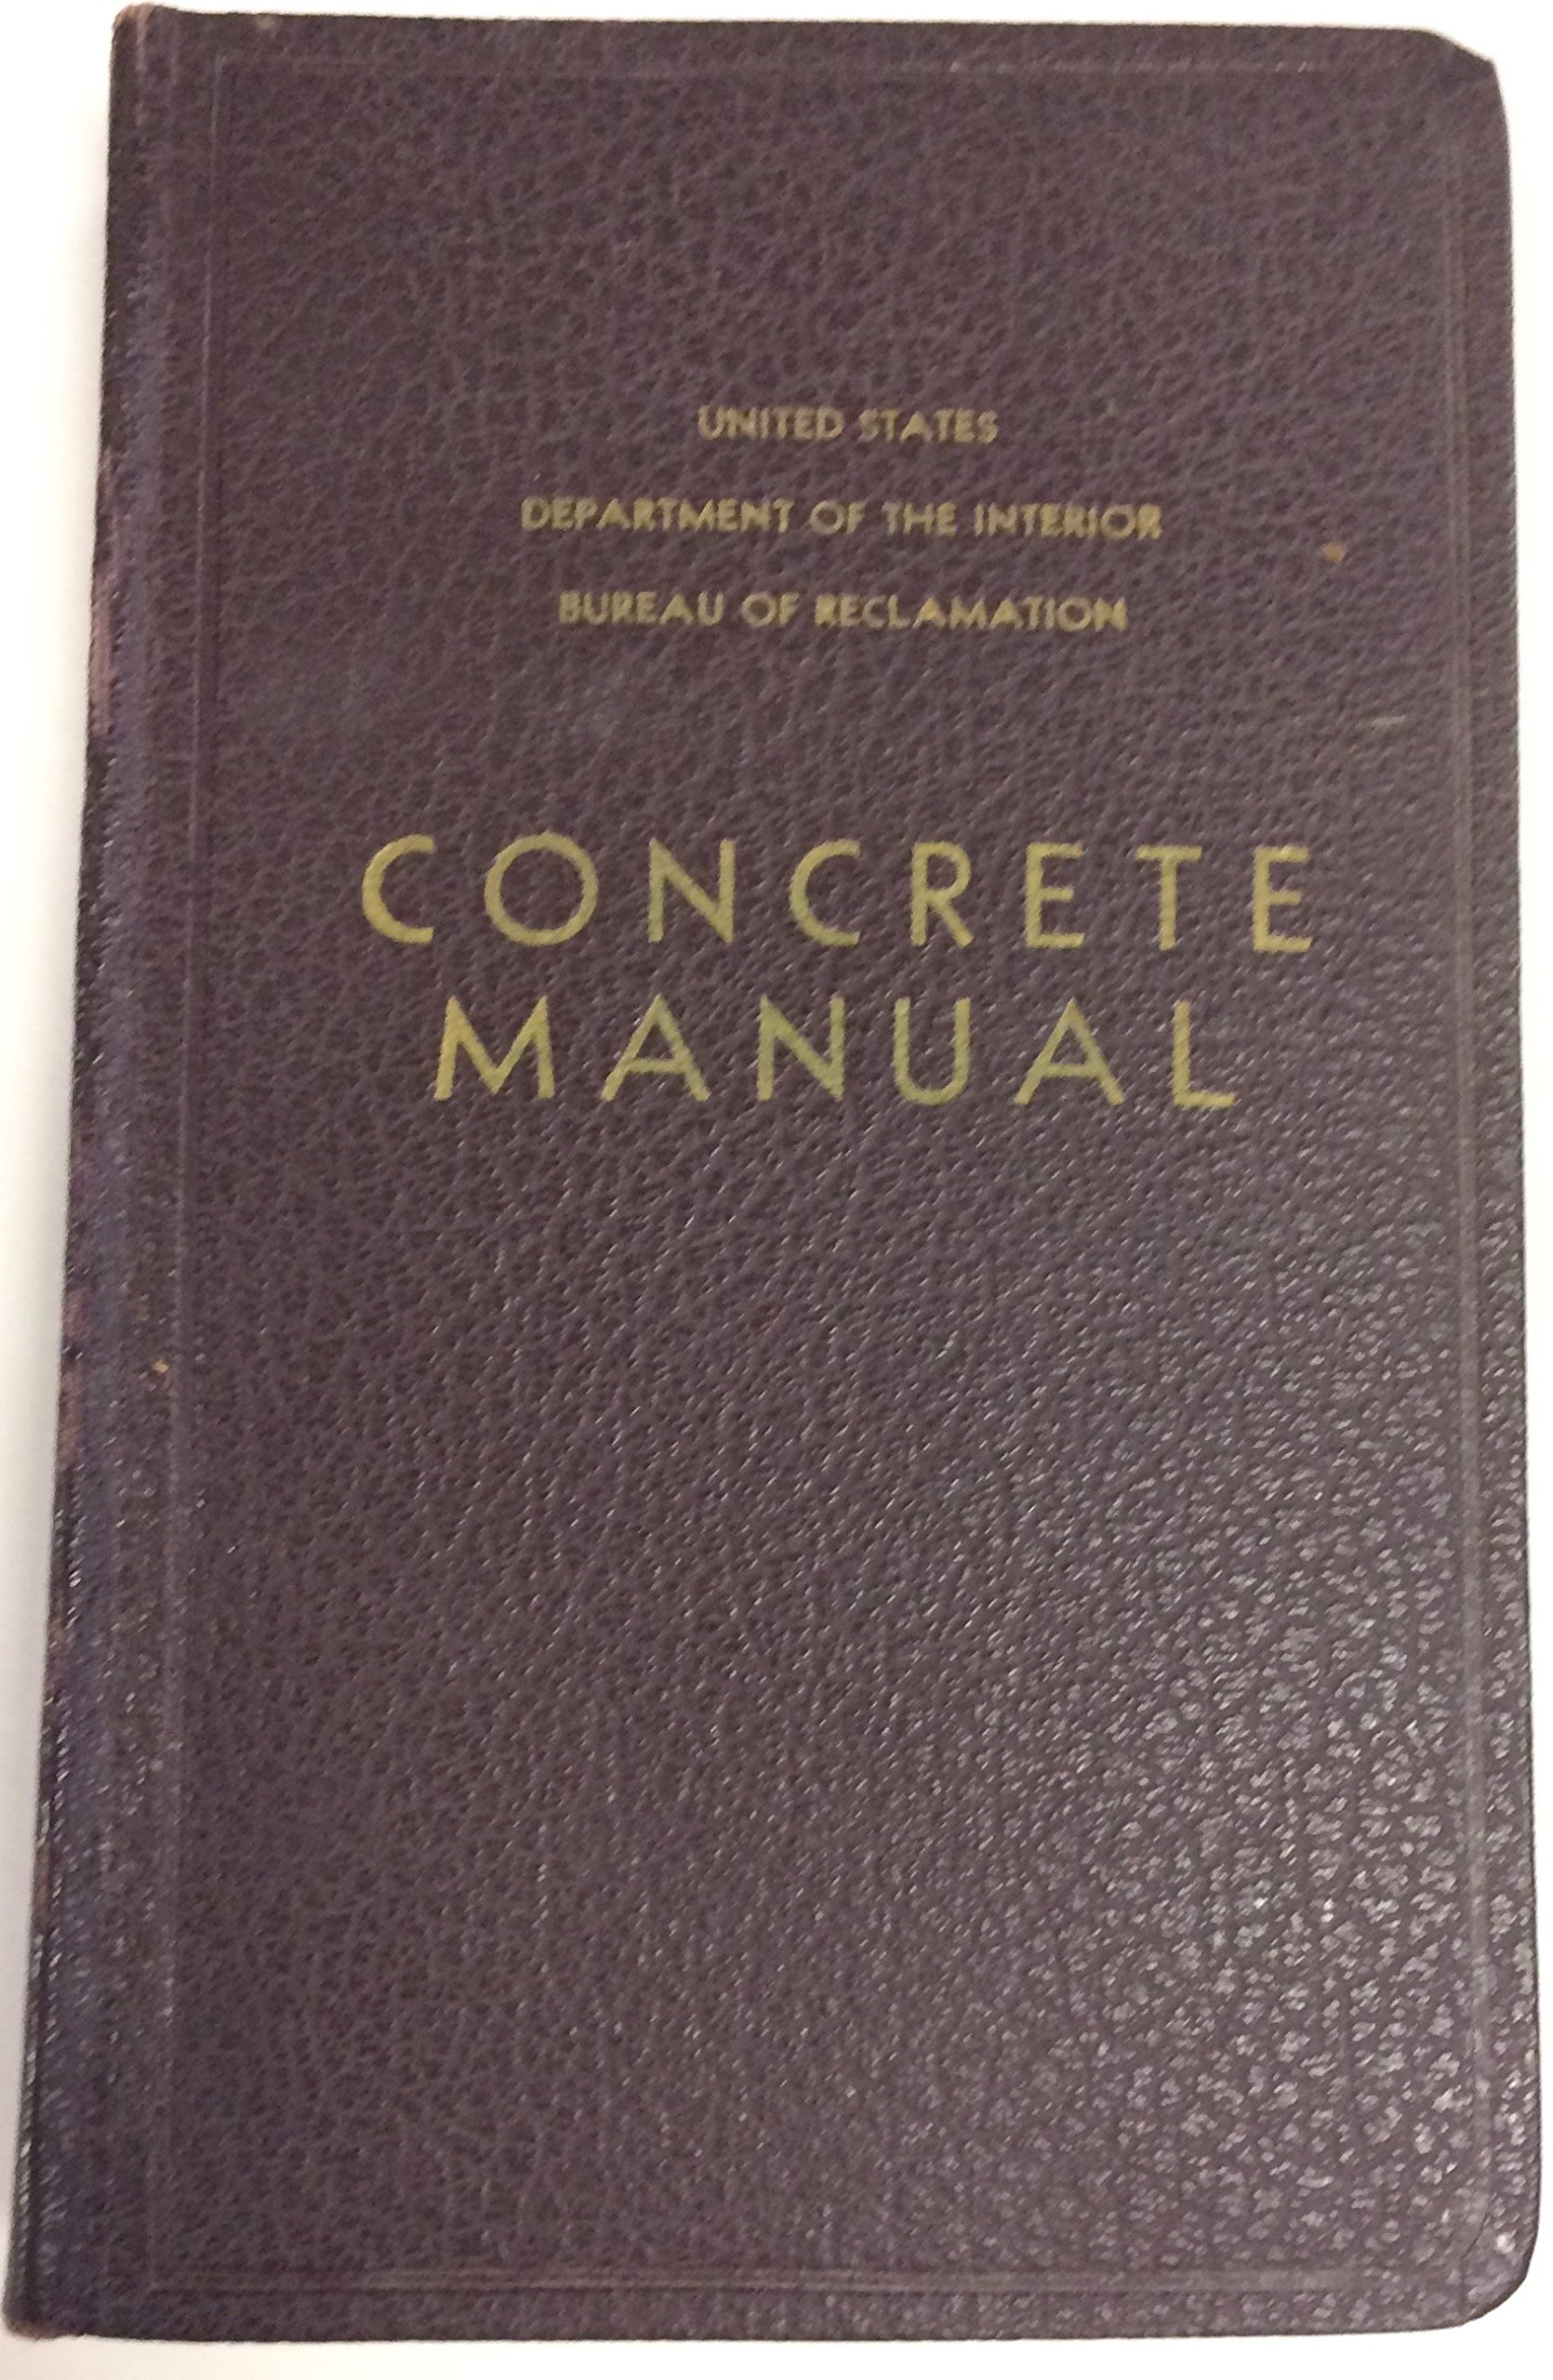 Concrete Manual, a Manual for the Control of Concrete Construction, Stated 1st Edition, Buffalo Seal on Title Page, 1938